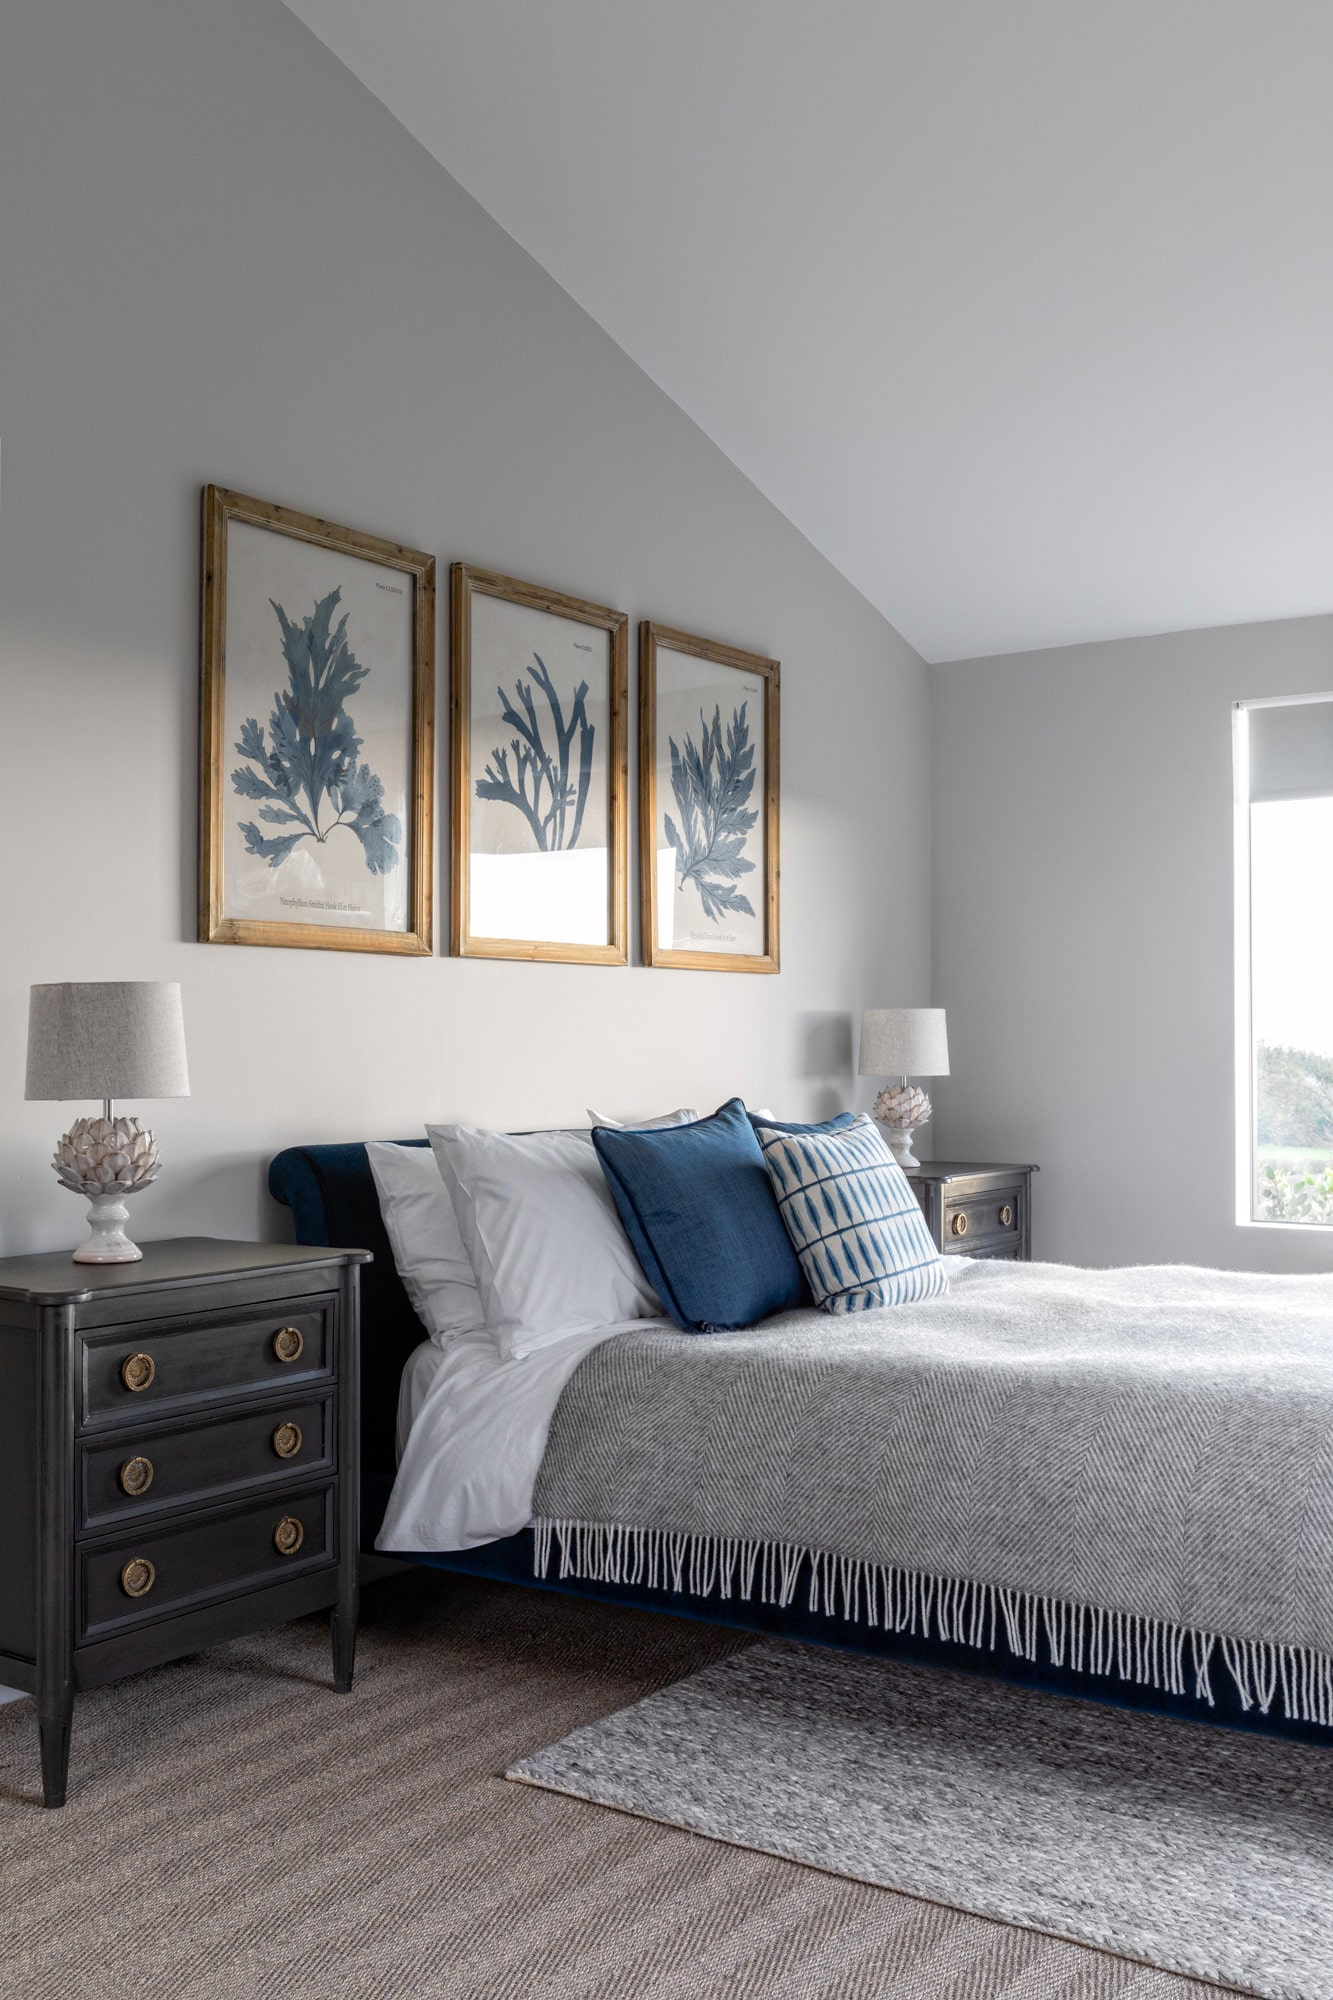 Interior photo of a bedroom, grey walls, a bed with 2 bedside tables, 3 posters above the bed.